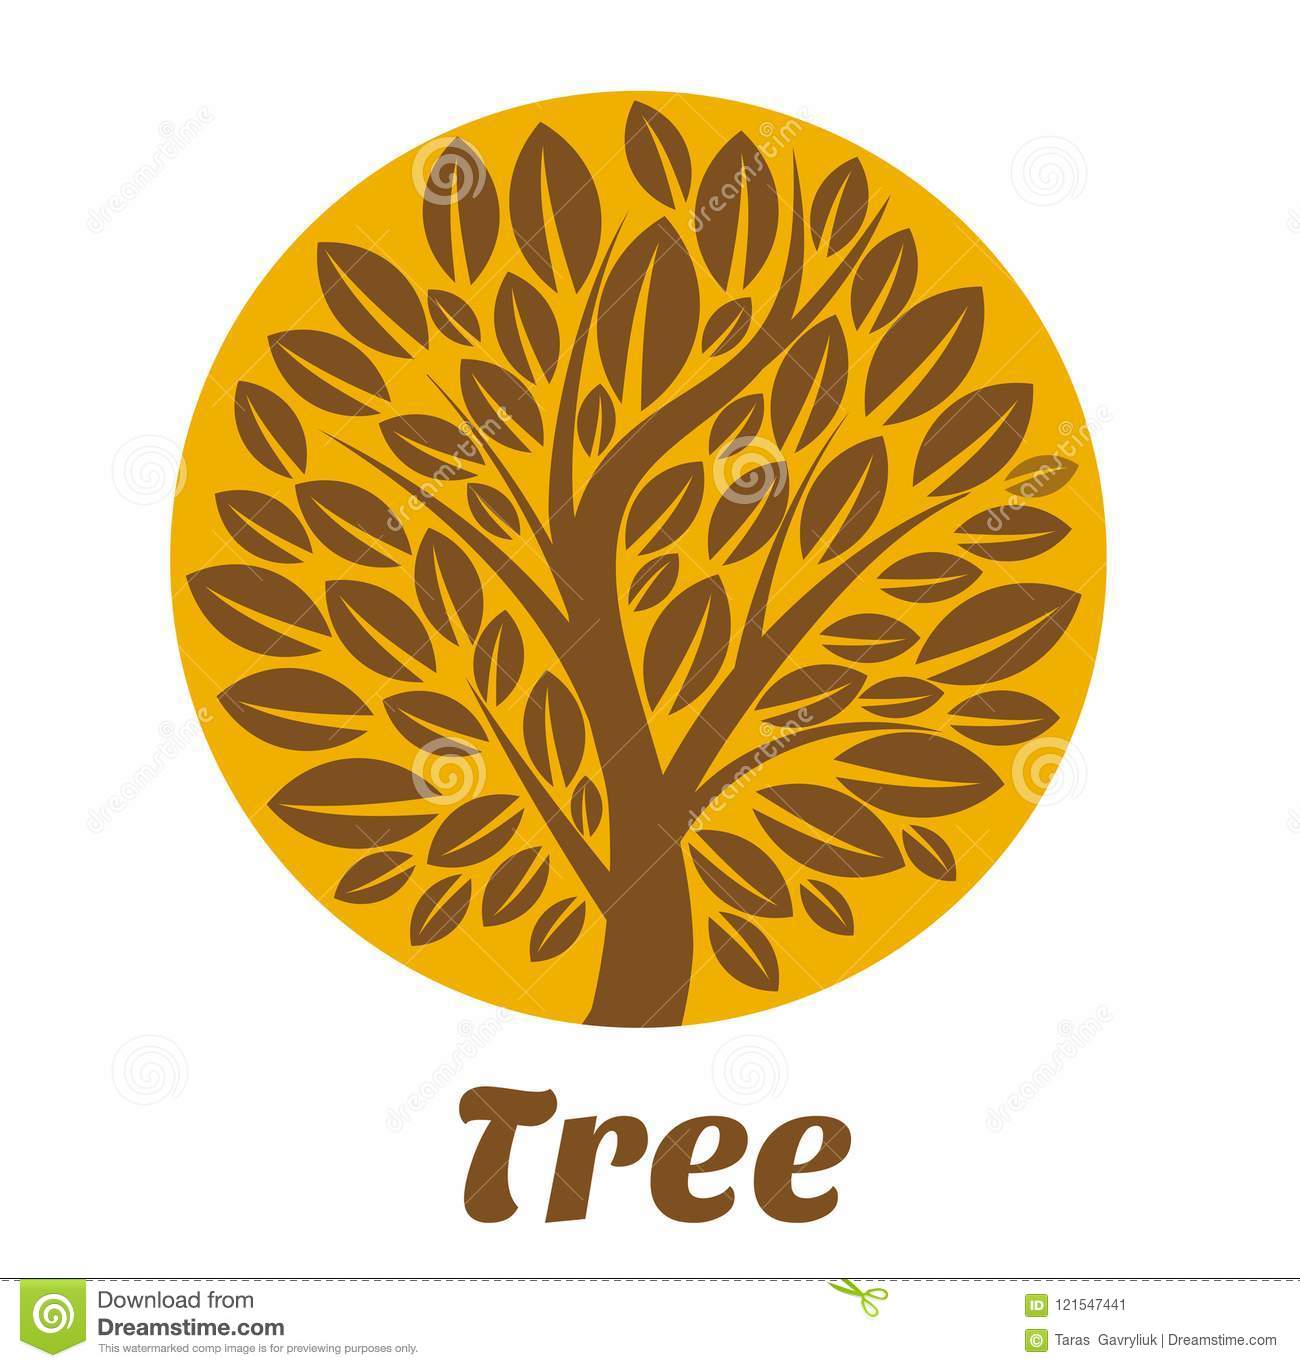 Tree logo template stock vector. Illustration of growth - 121547441